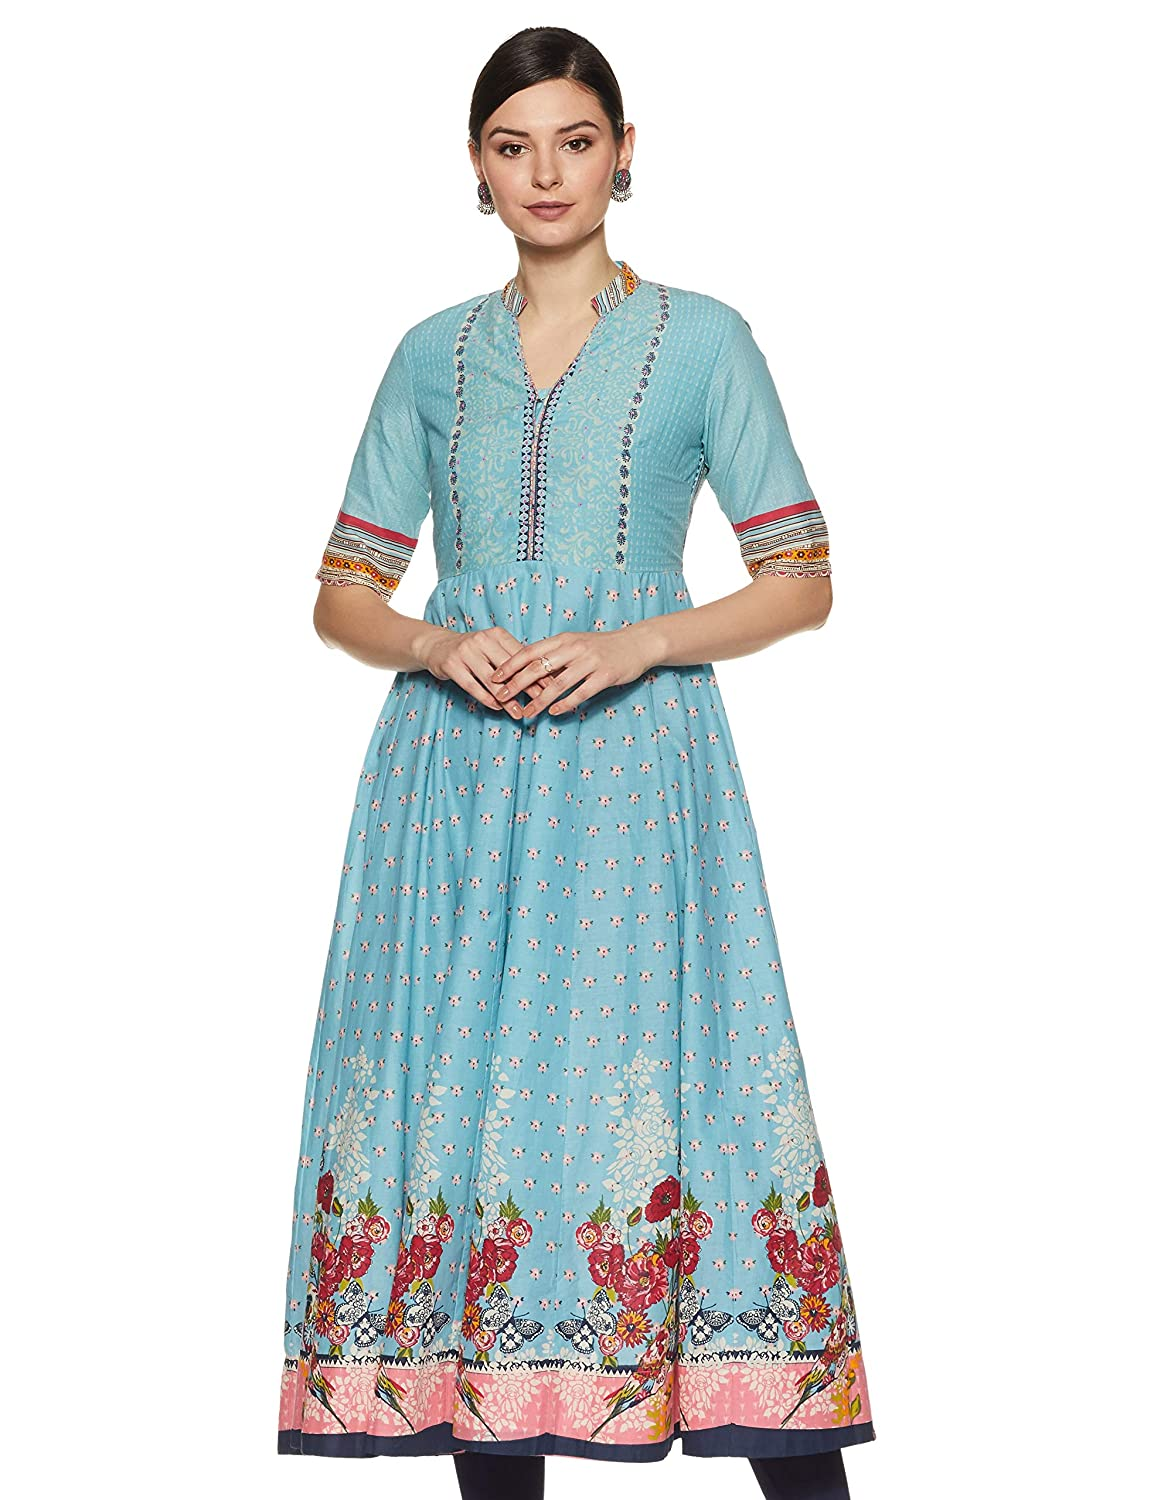 Best Anarkali Kurta For Women's